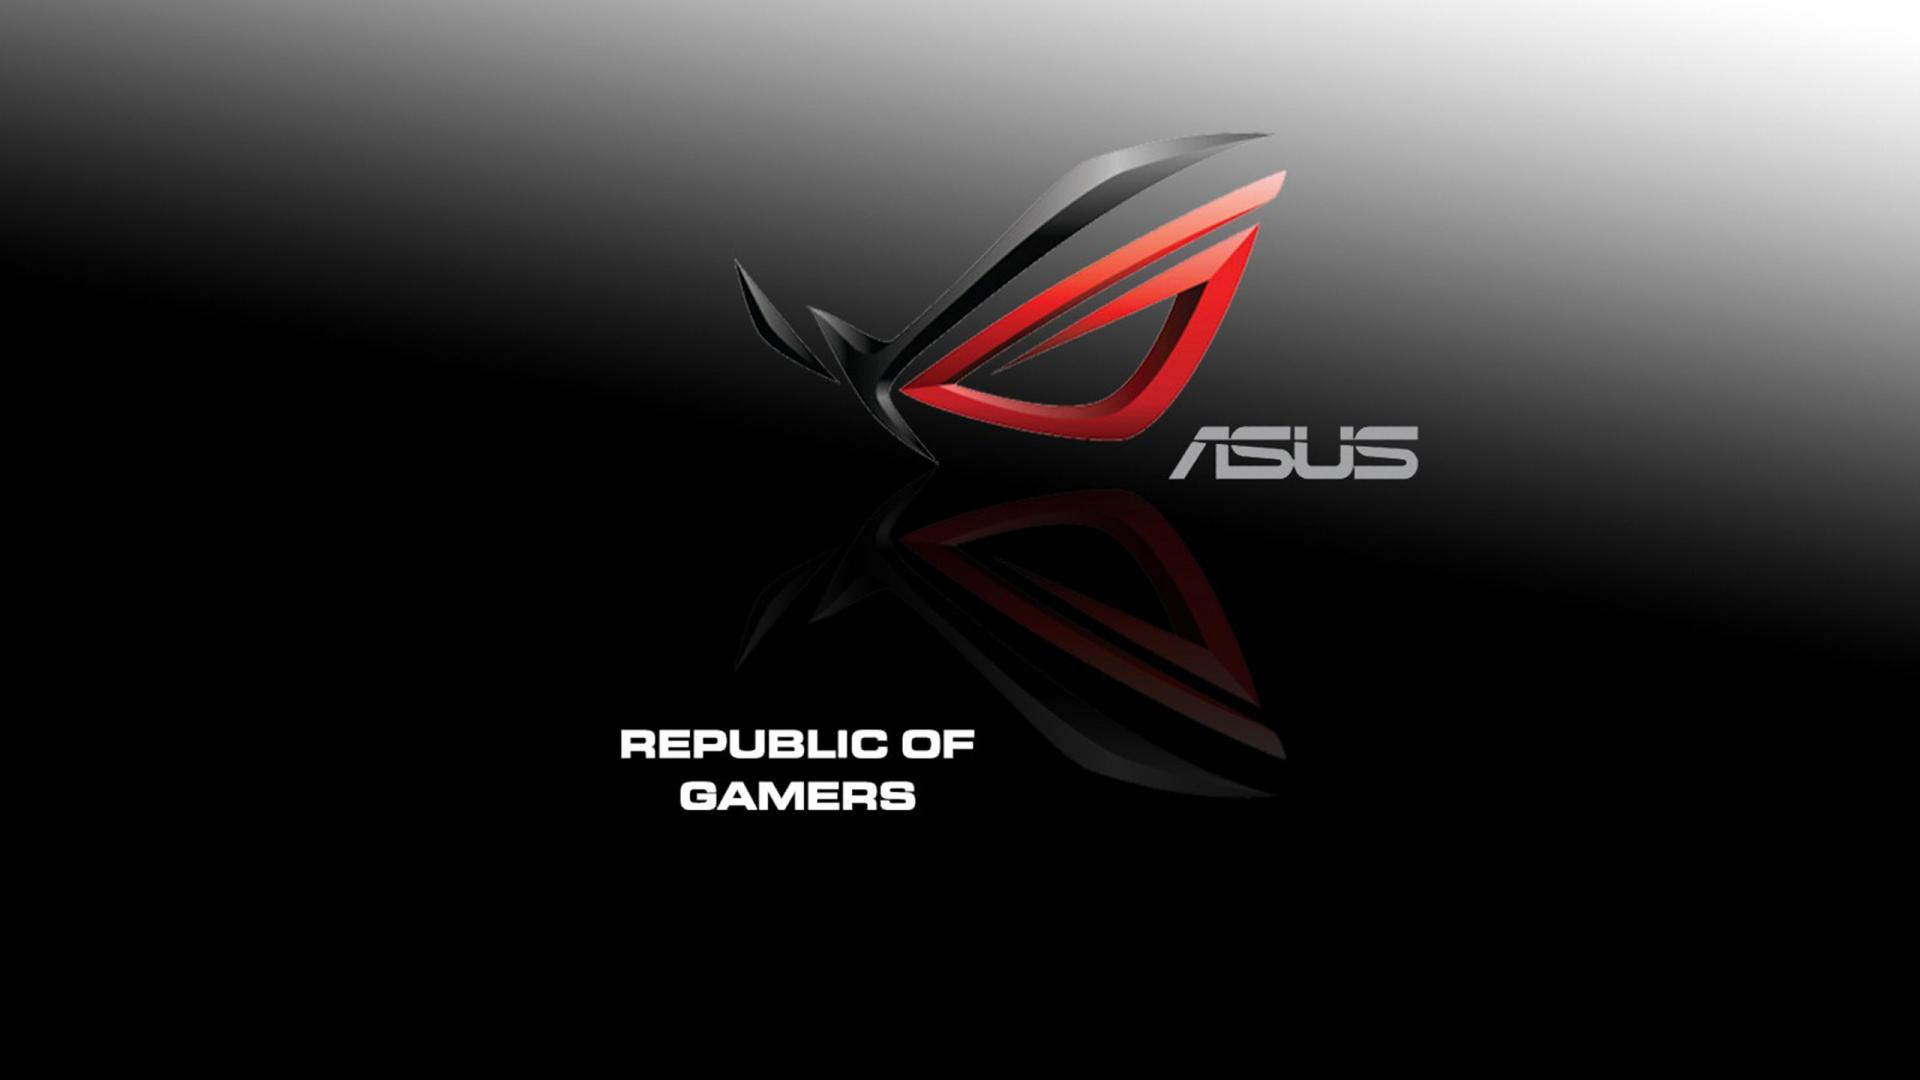 ASUS Wallpaper Full HD 1920x1080